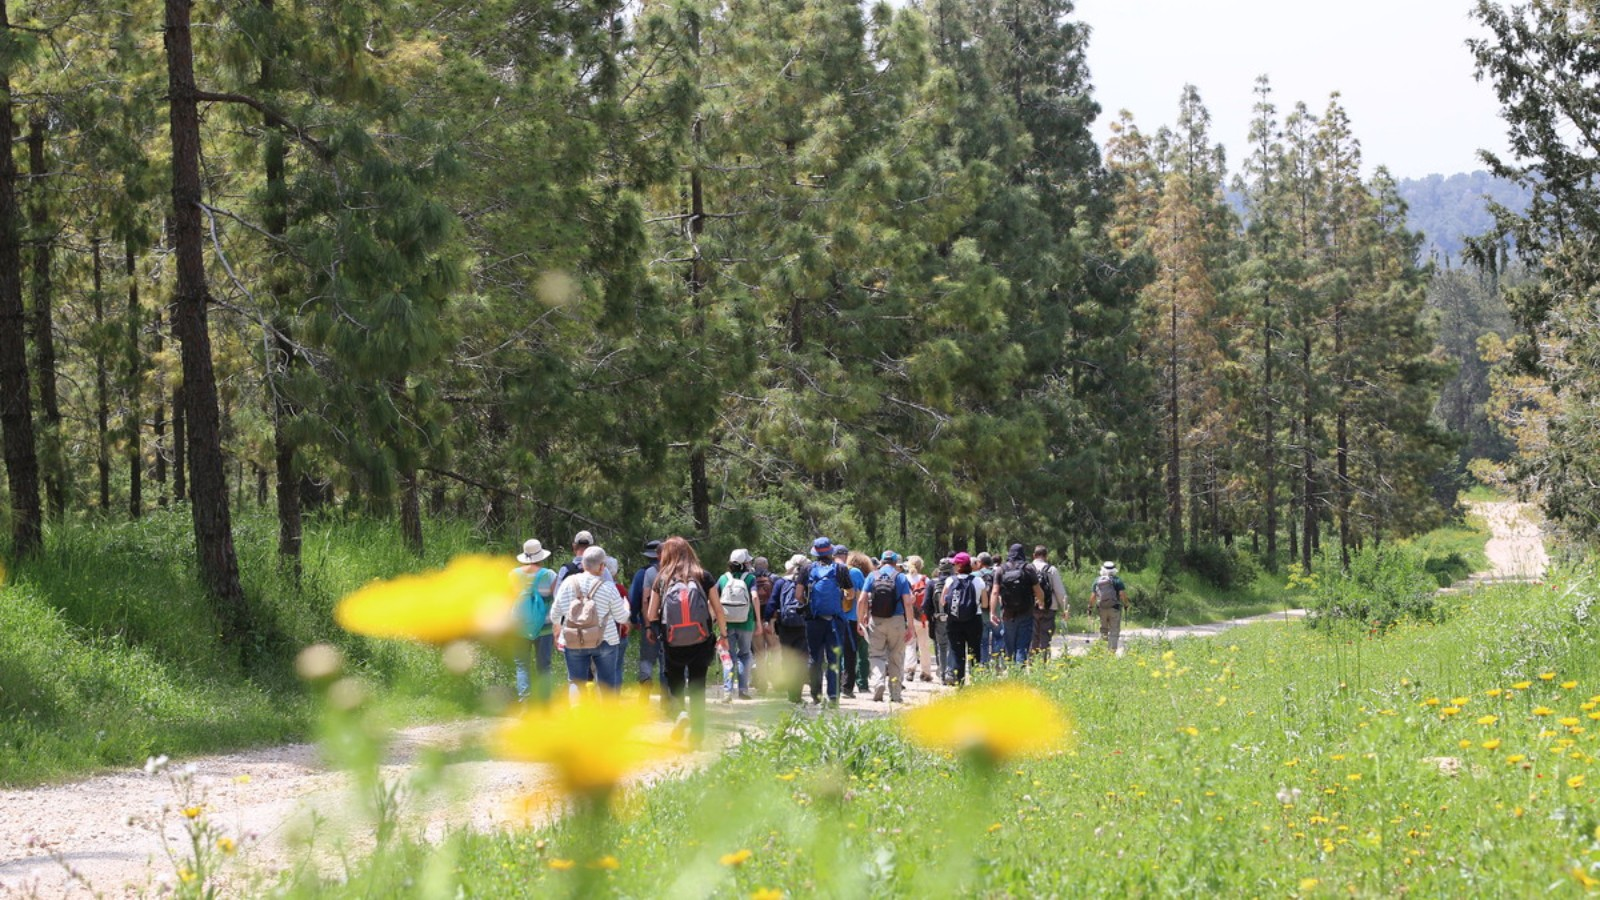 Hike in Jesus's footsteps along the Emmaus Trail